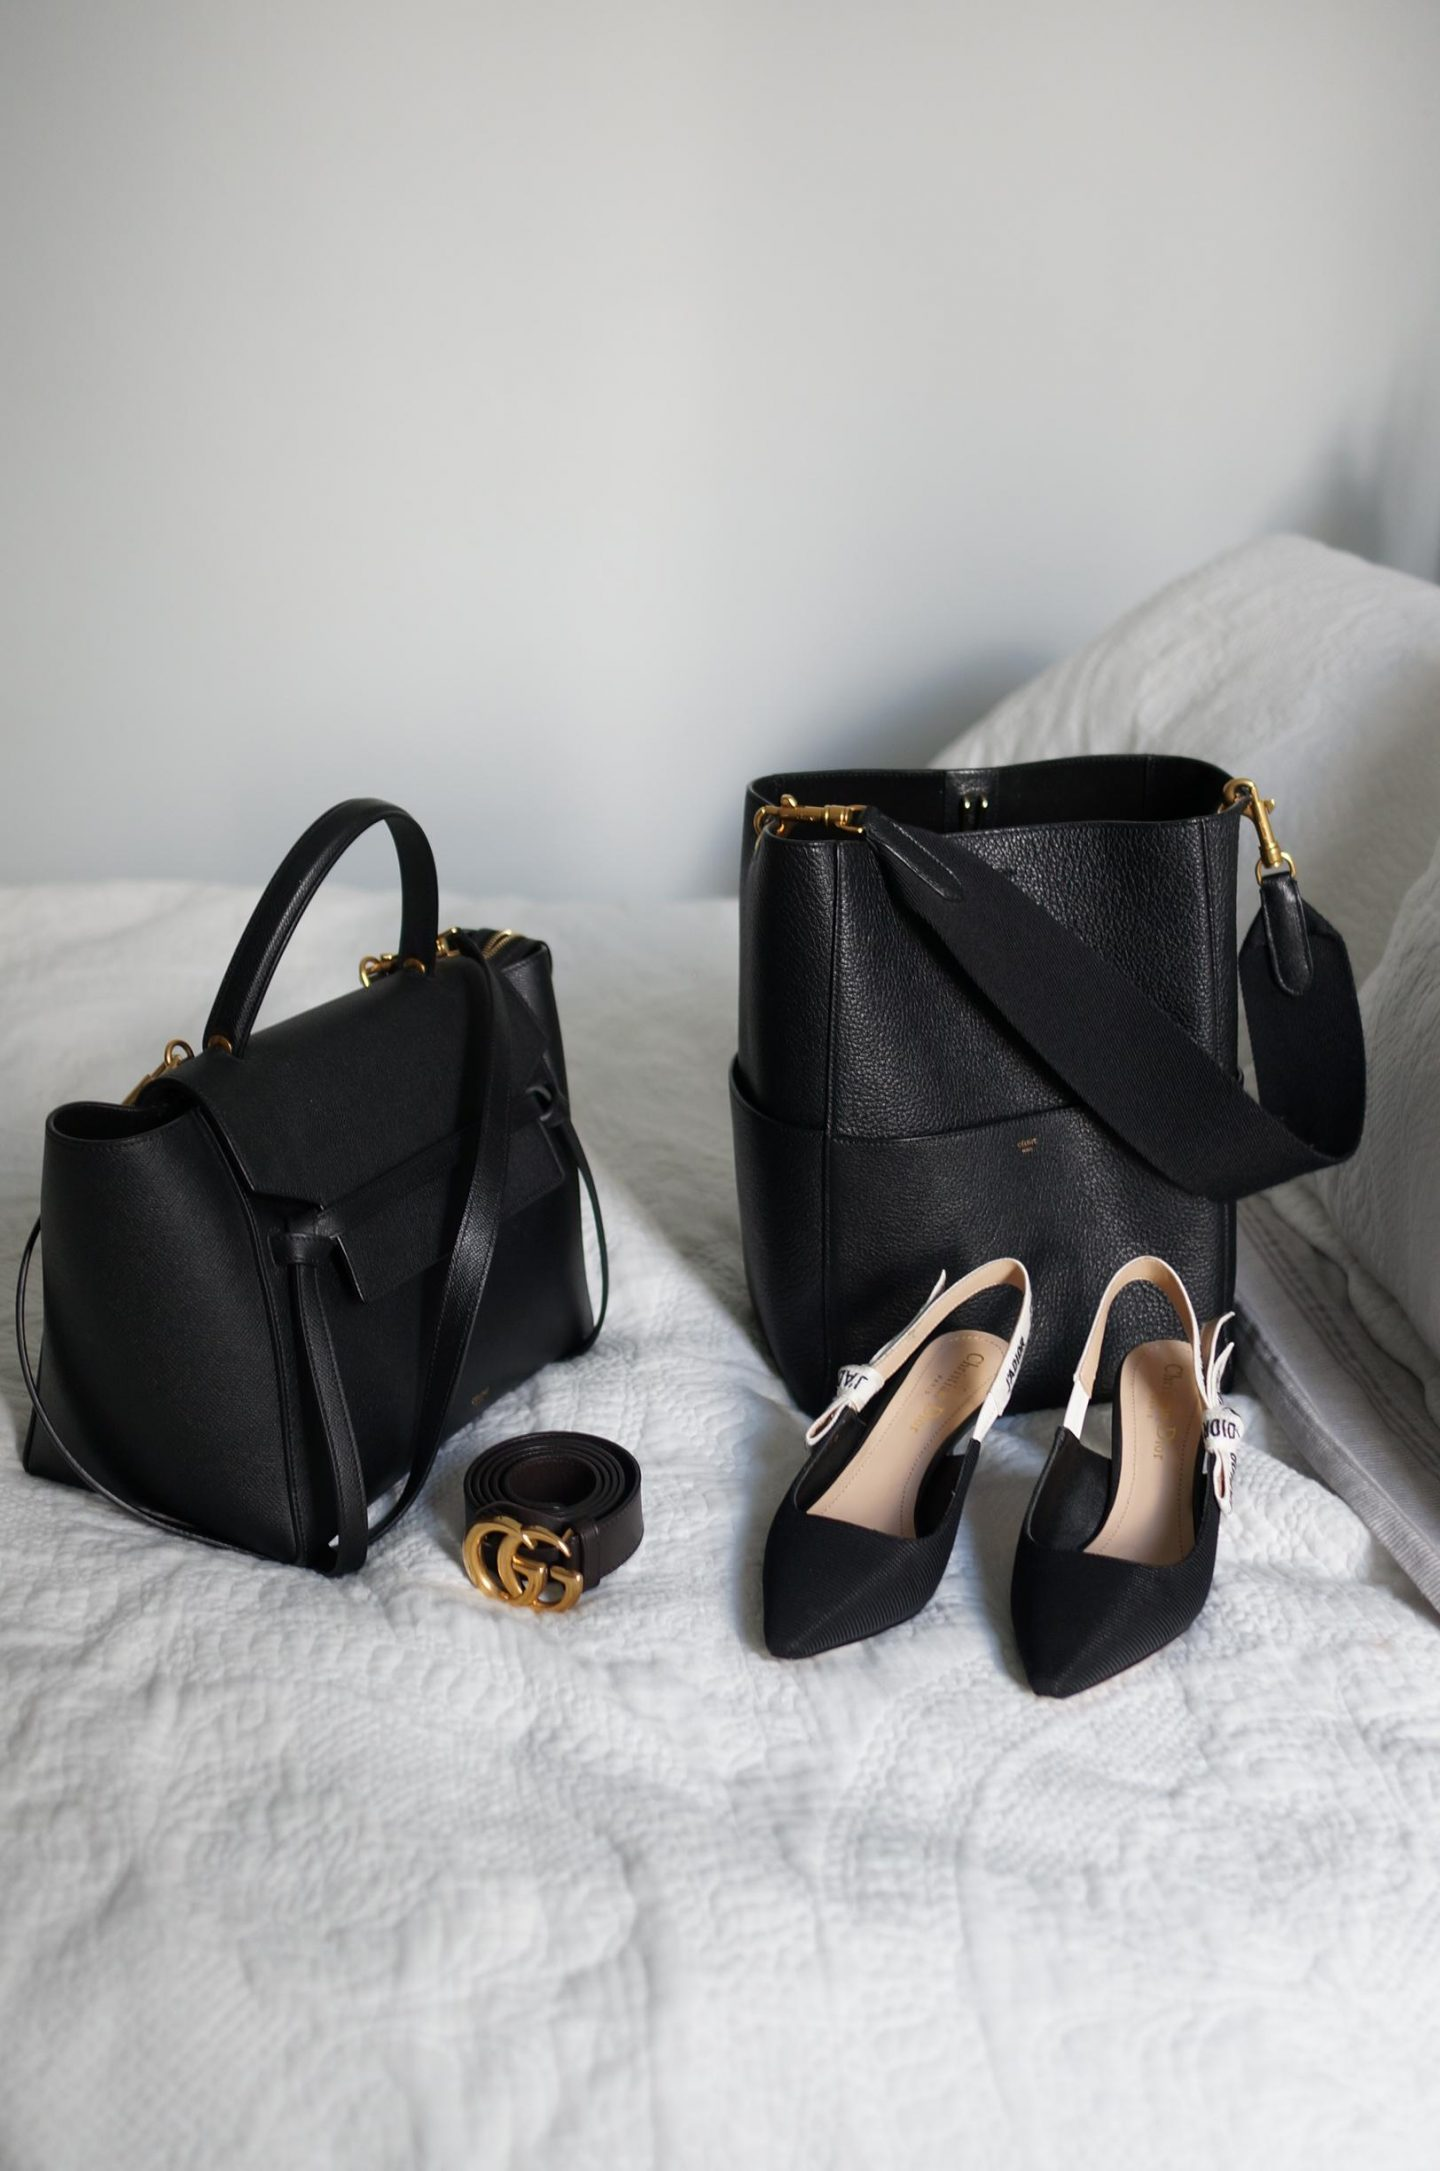 guide to buying pre-loved designer bags and handbags